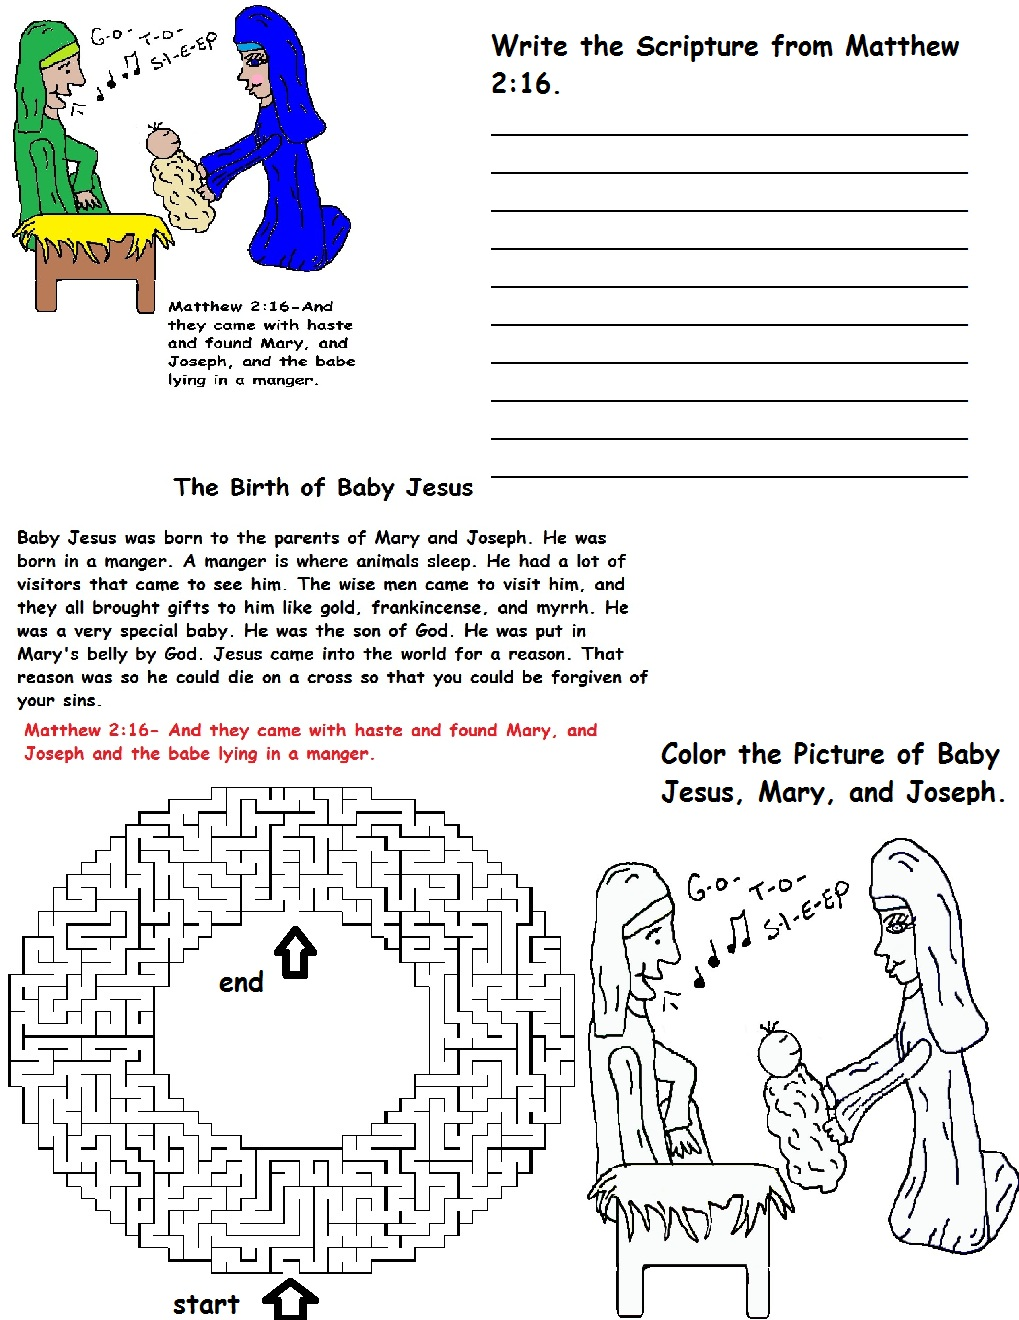 25+ Inspired Picture of Jesus Coloring Page - birijus.com | 1320x1019